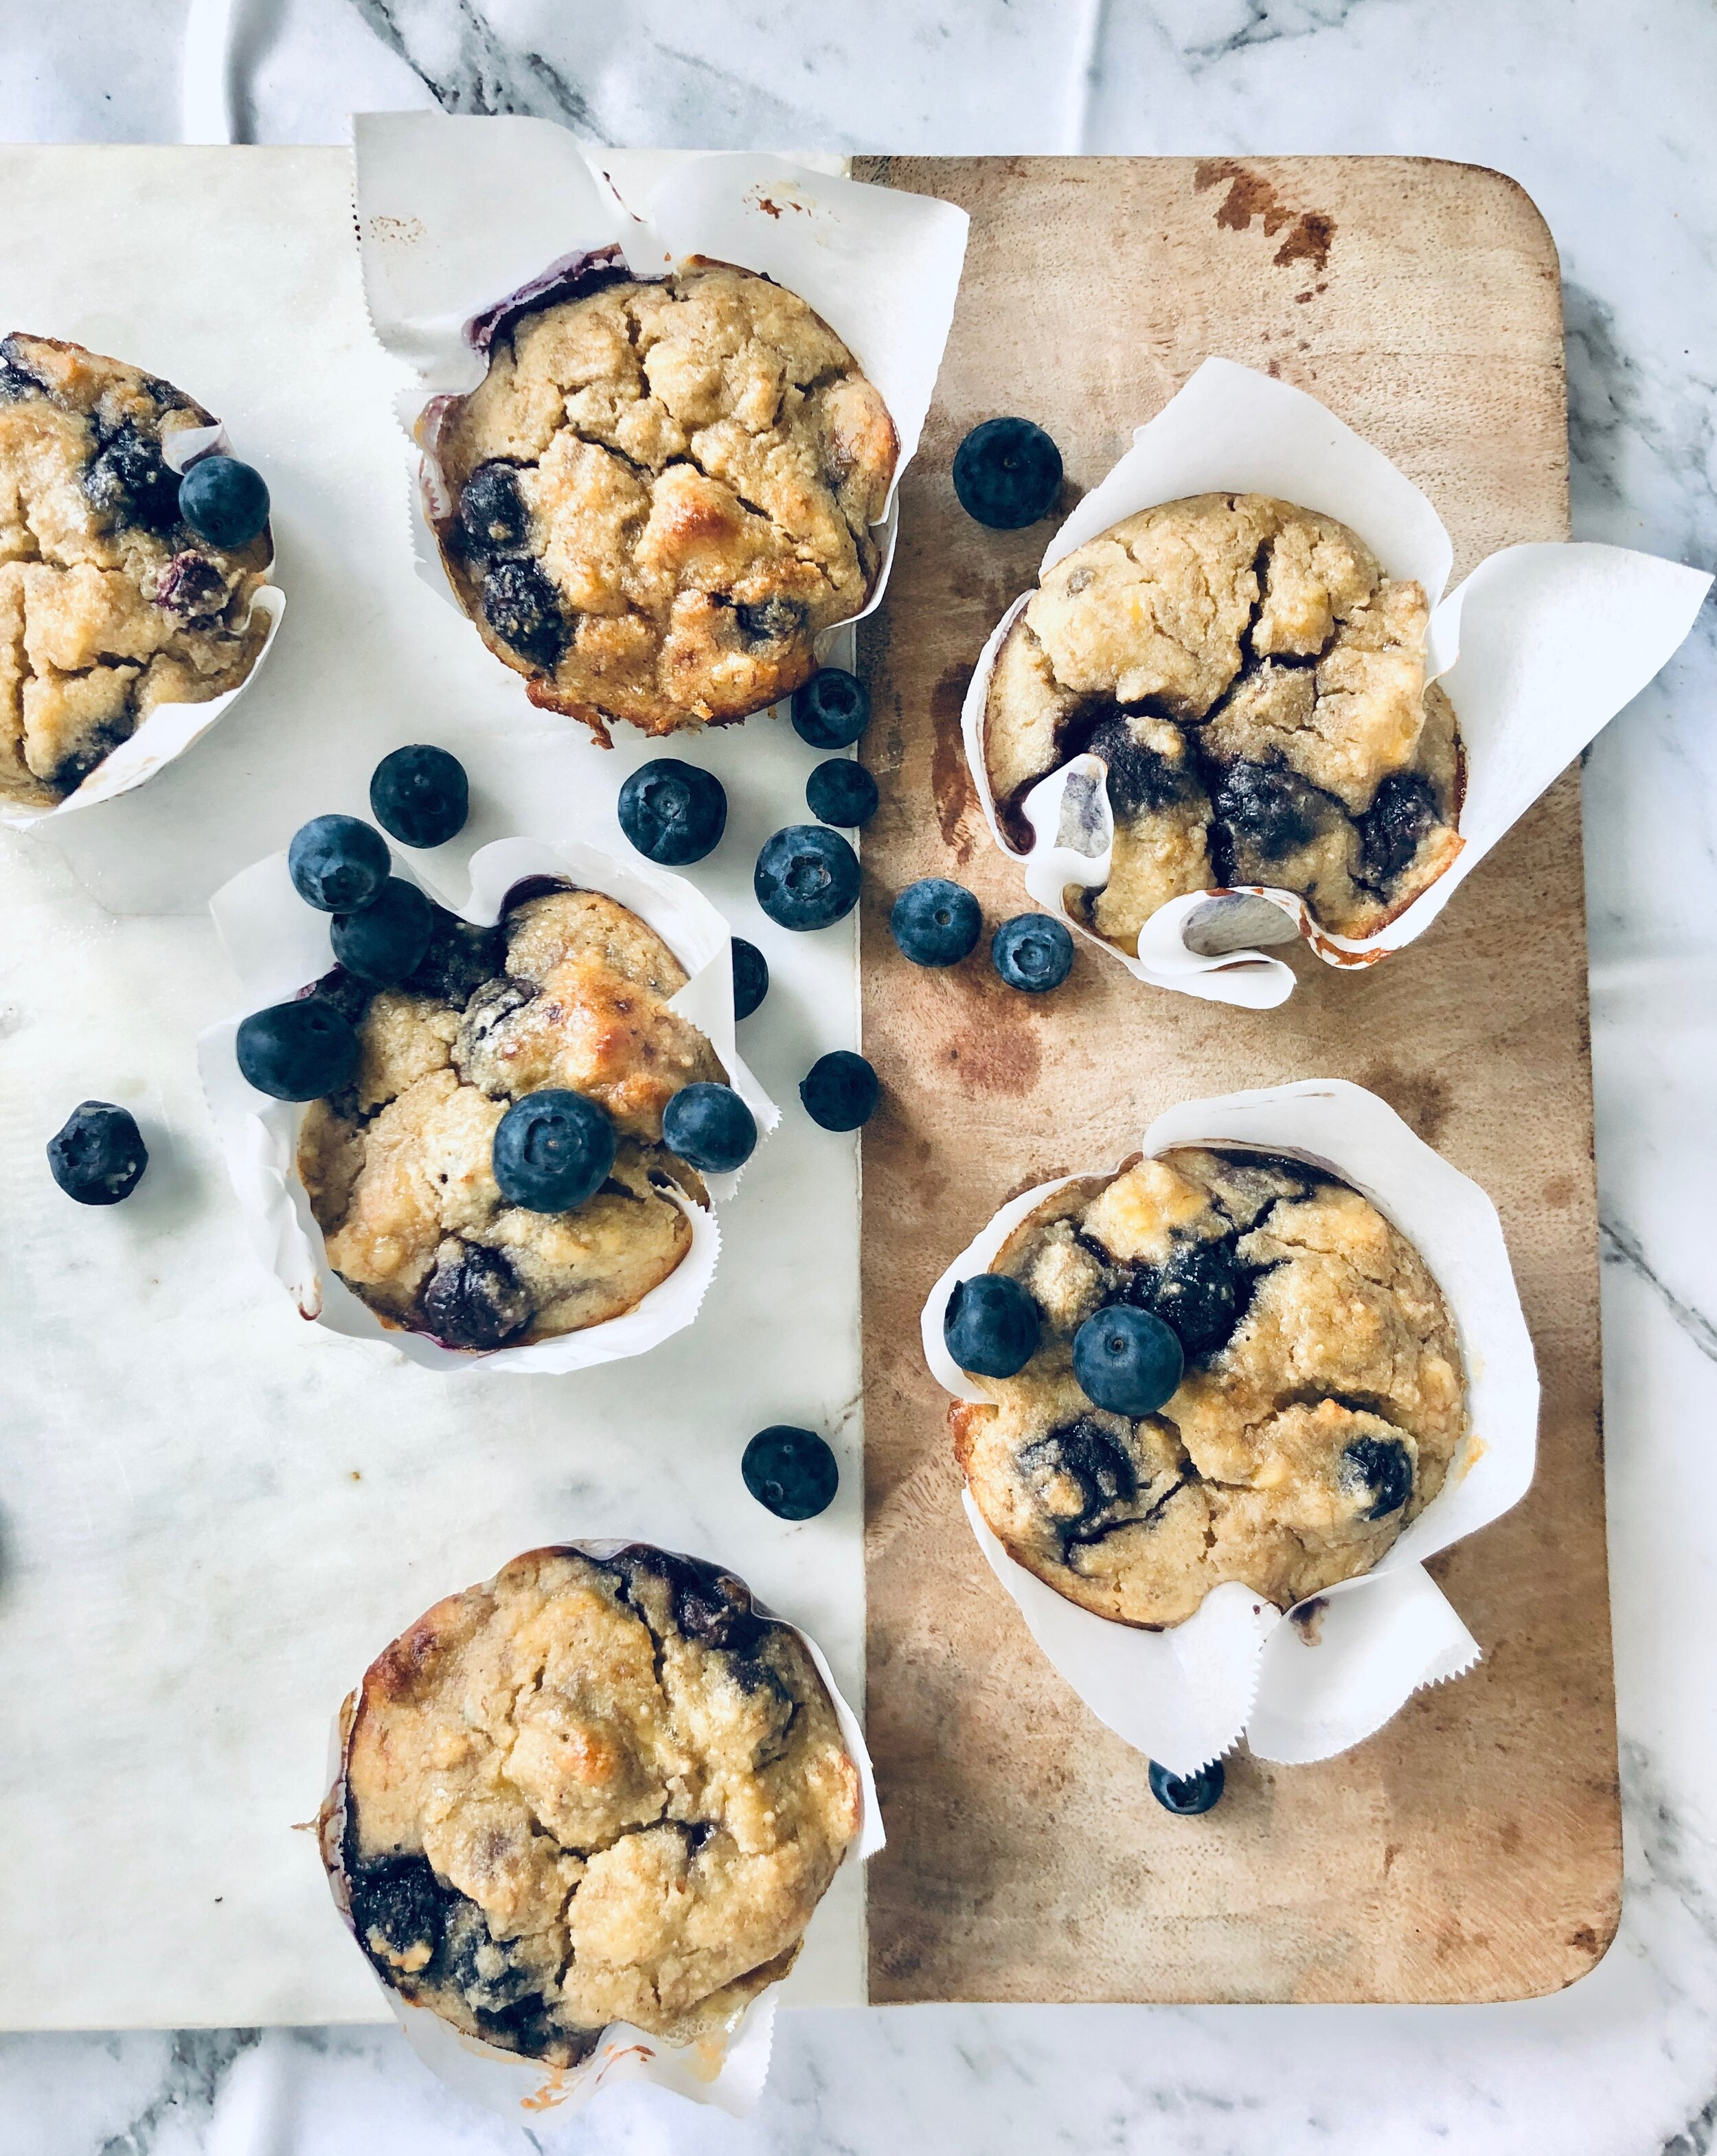 - Gluten-free, super moist, and loaded with sweet raspberries, these muffins are great for on the go brekky or an afternoon pick me up. Let's bake!Ingredients225g of Bananas, mashed 2 Egg ¾ cup blueberries, fresh or frozen Sweetener to taste, I used 1 tsp @nirvanahealthproducts pure ground stevia 1 1/2 cups of Almond meal 2 tsp Baking powder 1/2 tsp Salt 1 tsp ground vanilla I used @terramadreorganics 1/4 cup Coconut oil Dash of Almond milk (depends on consistency of mixture) I used @pureharvest Method Grease and line a muffin tin with baking paper. Mash bananas in a mixing bowl then add 2 eggs. Combine with a fork then add all dry ingredients. Mix together, adding dashes of almond milk if mixture is too thick. Carefully fold in the raspberries Pour/spoon into muffin tray. Bake in preheated oven at 170 degrees fan forced for about 15 - 20 minutes.